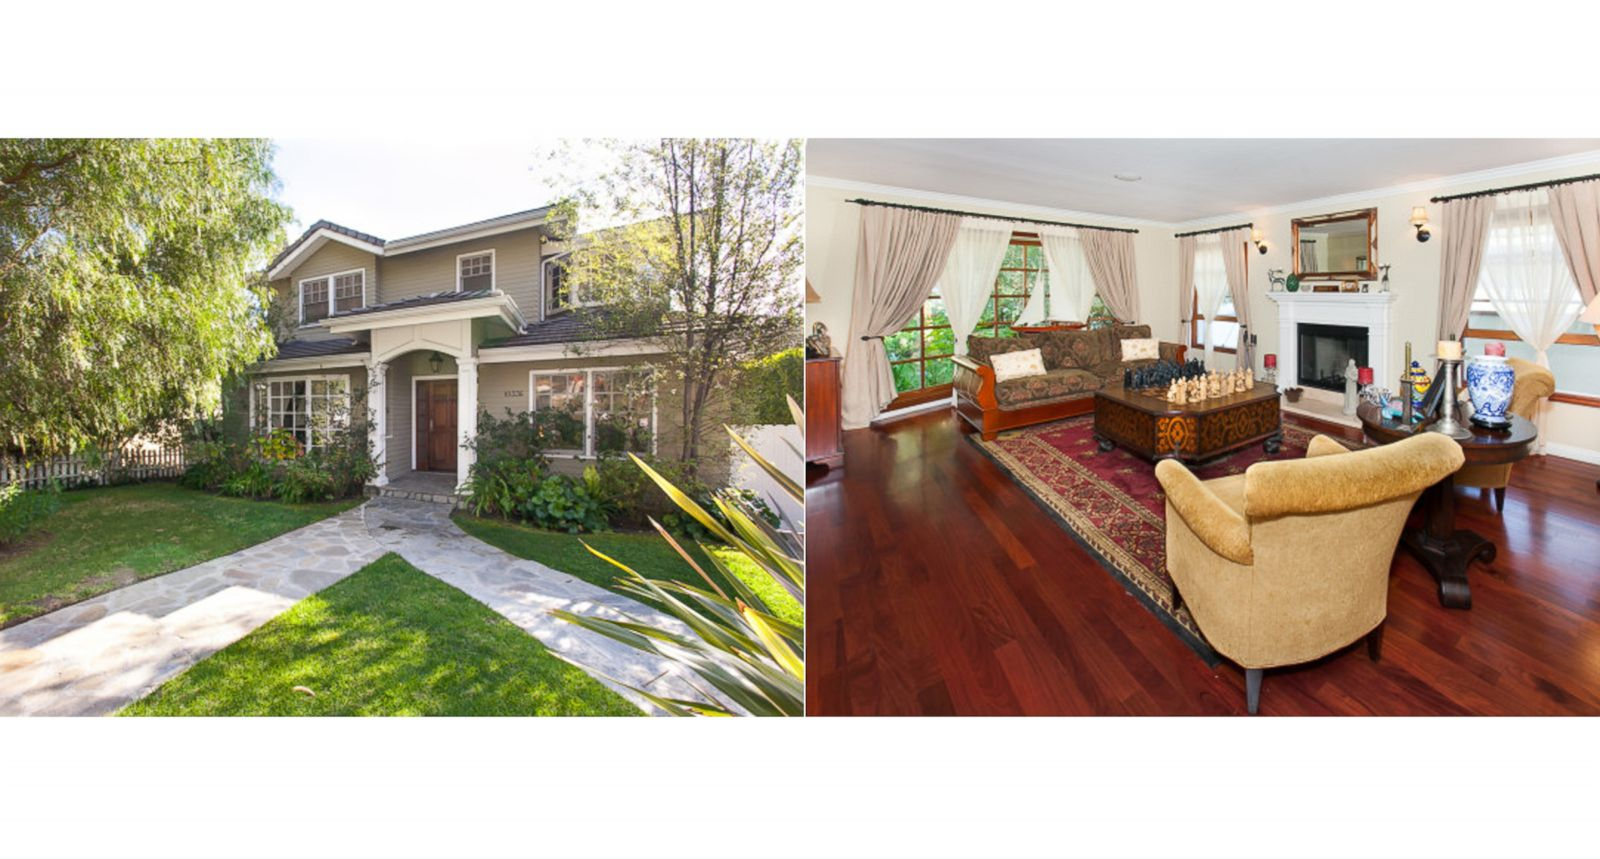 Modern family tv home sold picture television and film homes for sale abc news